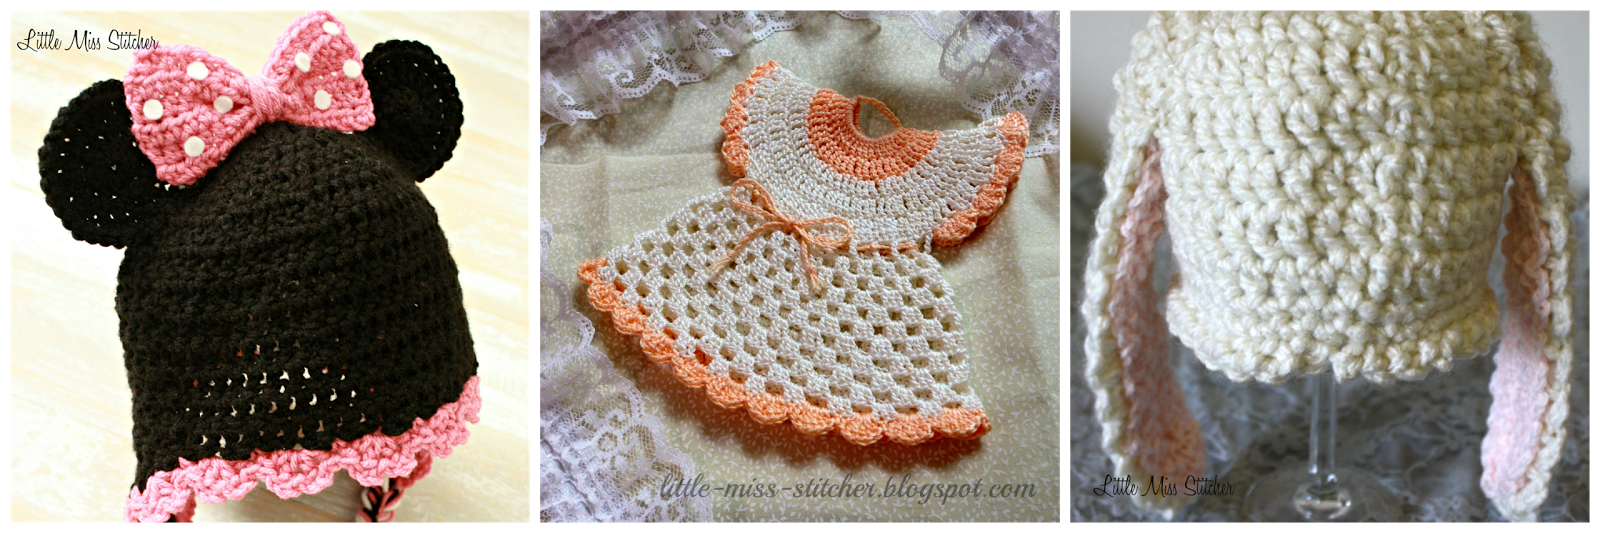 http://little-miss-stitcher.blogspot.com/p/crochet-projects_6.html